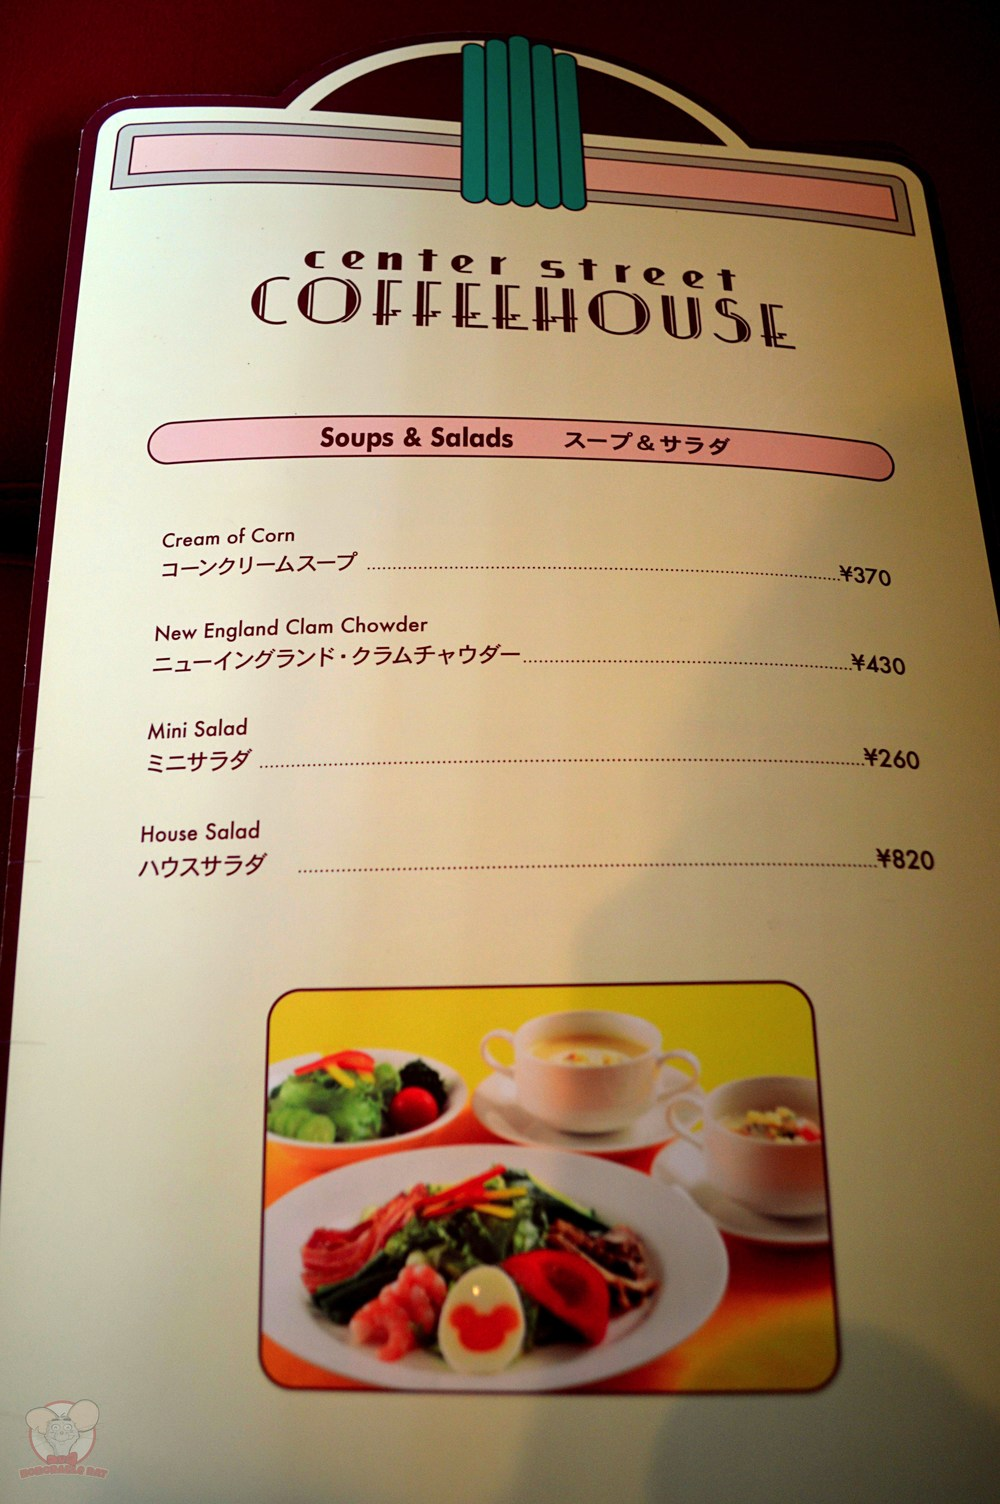 Center Street Coffeehouse Menu, Soups and Salads